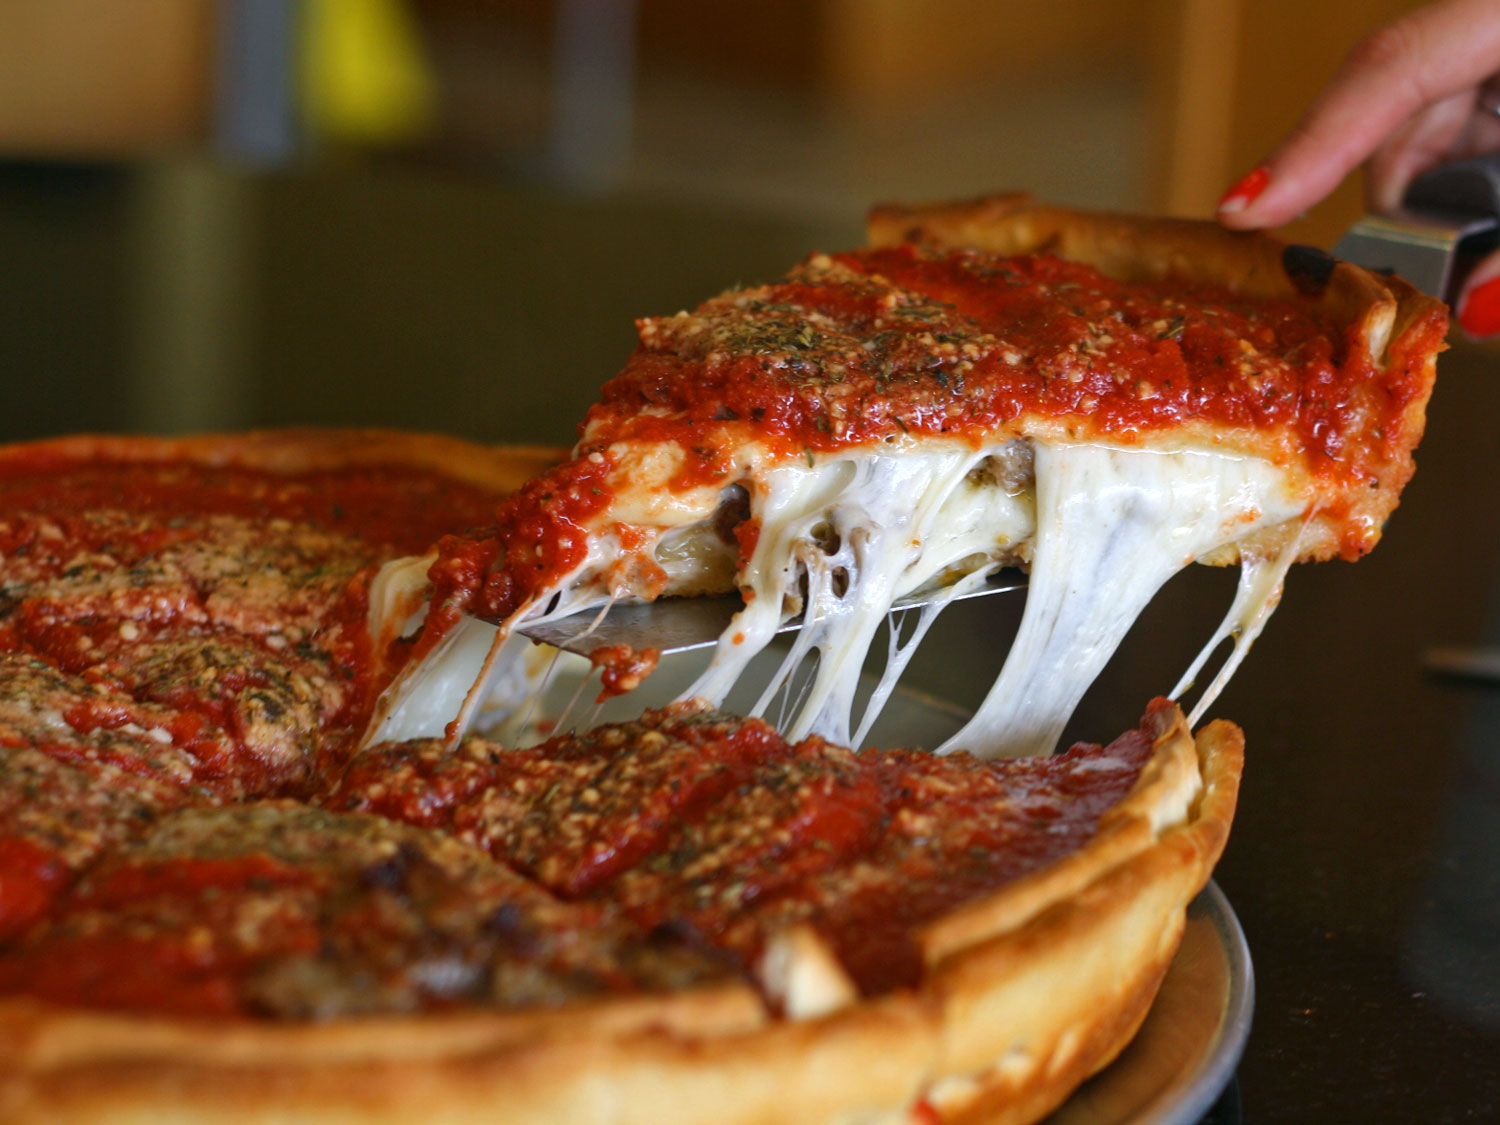 20140525-294370-best-deep-dish-pizza-art-of-pizza-primary-thumb-1500xauto-404176.jpg